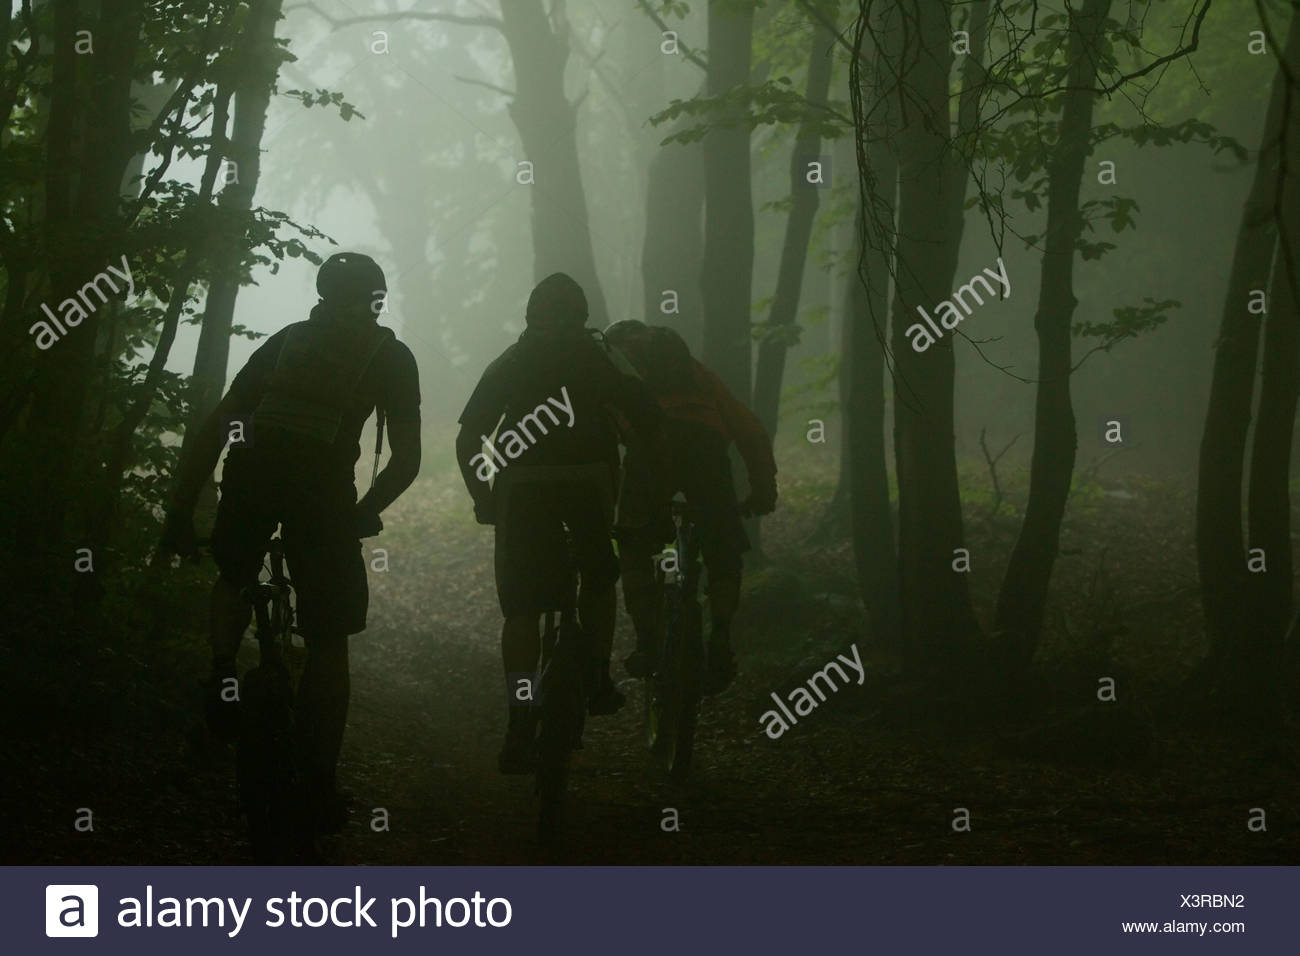 Three mountainbike riders driving through a dark forest - Stock Image